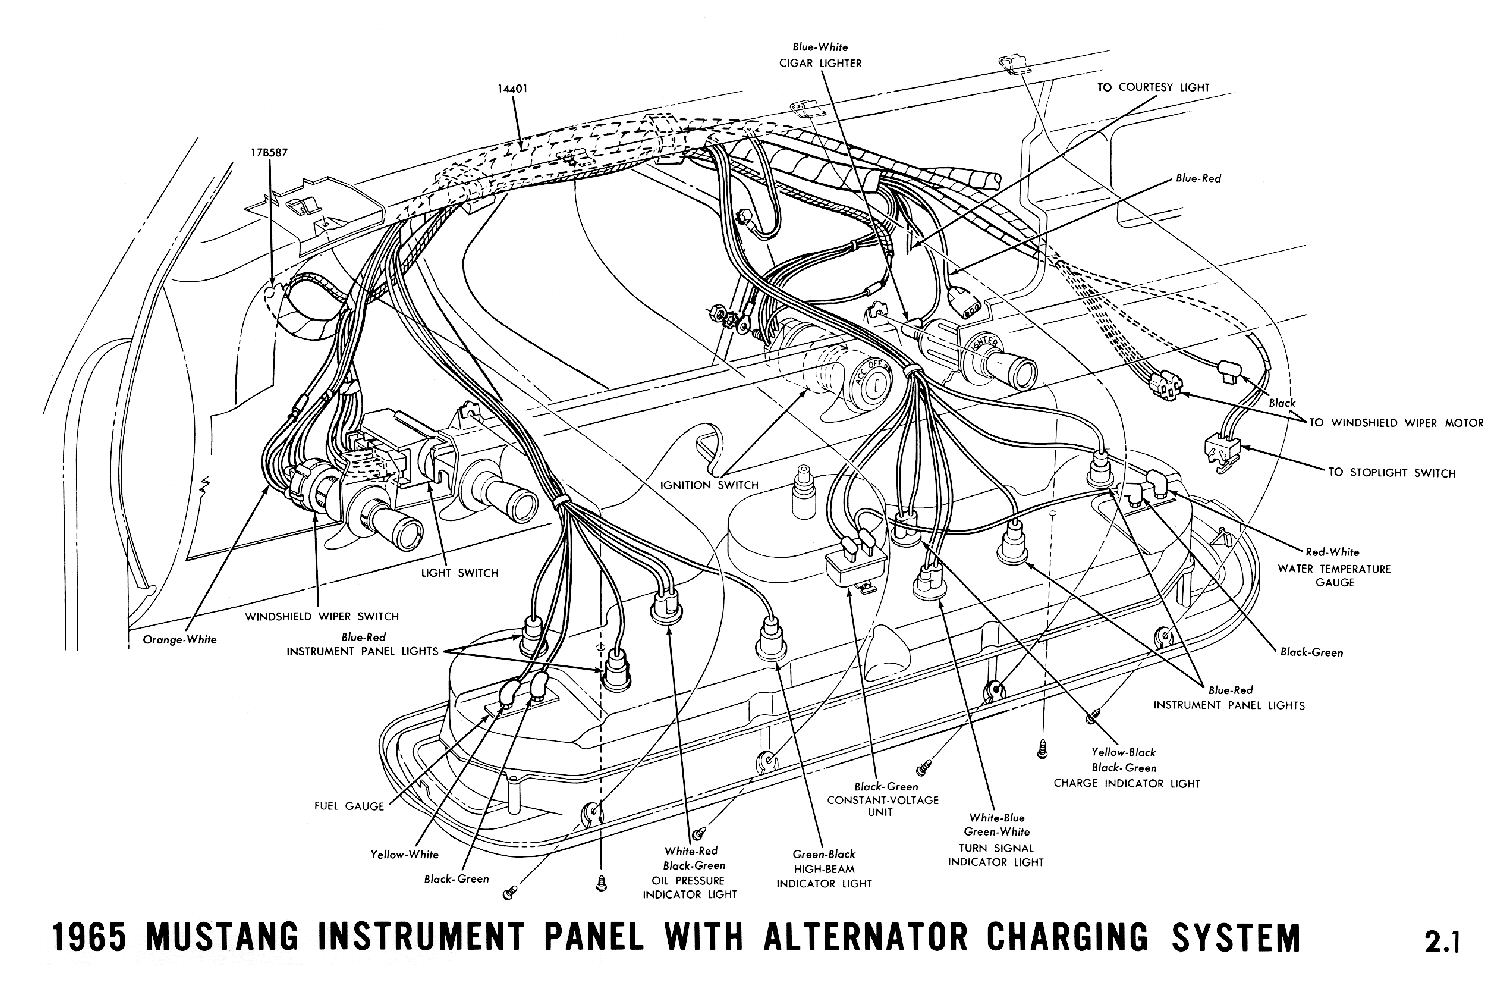 wiring diagramimages for 1967 chevelle ignition switch wiring ... on 1985 mustang alternator wiring diagram, 1968 mustang alternator wiring diagram, 1969 mustang alternator wiring diagram, 1980 mustang alternator wiring diagram, 1966 mustang alternator wiring diagram, 1992 mustang alternator wiring diagram, 1970 mustang alternator wiring diagram, 1967 mustang alternator wiring diagram, 1971 mustang alternator wiring diagram, 1986 mustang alternator wiring diagram, 1972 mustang alternator wiring diagram, 1973 mustang alternator wiring diagram, 1989 mustang alternator wiring diagram, 1983 mustang alternator wiring diagram, 1990 mustang alternator wiring diagram,